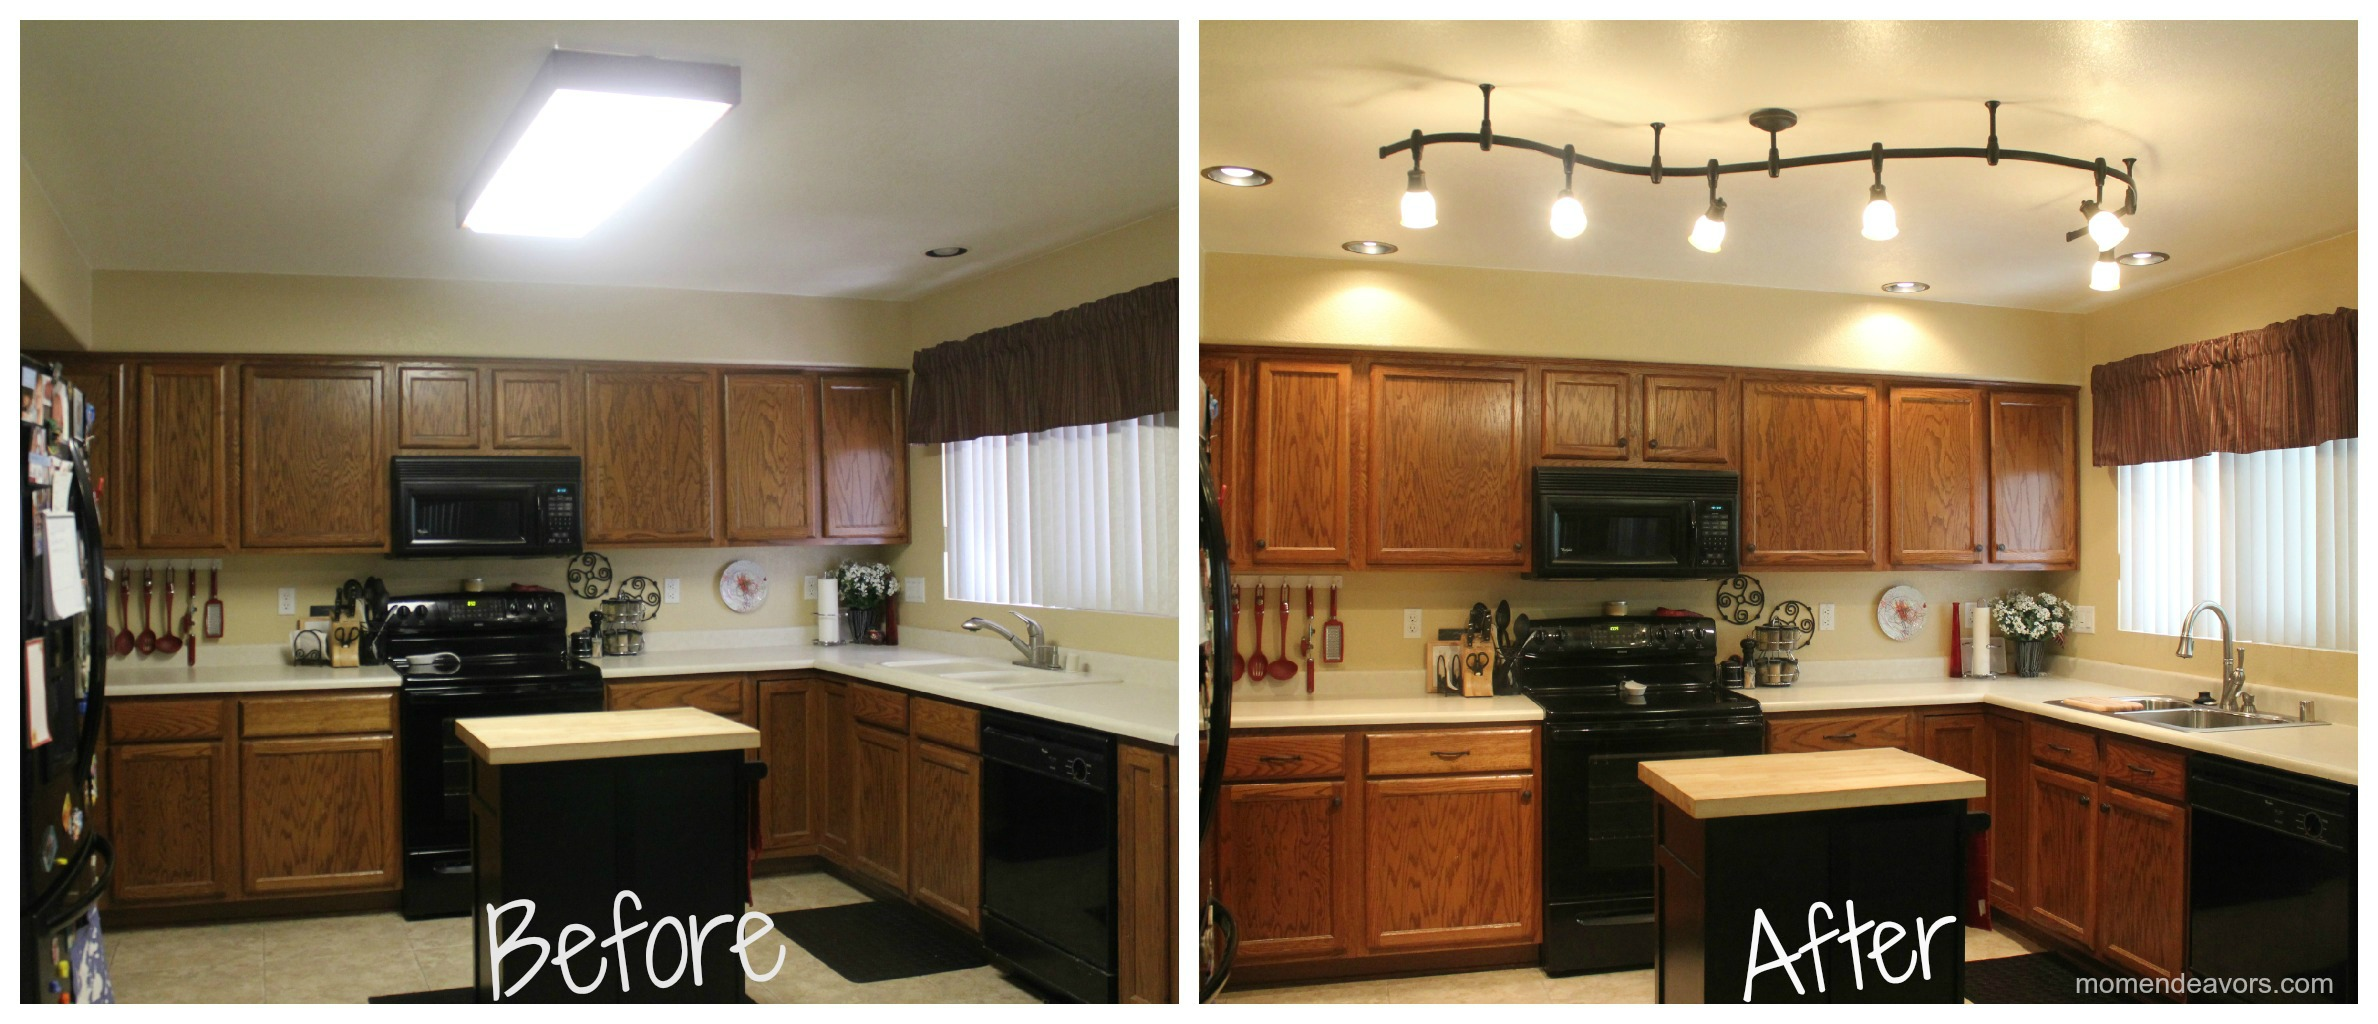 Small kitchen remodels before and after large and beautiful photos photo to select small - Remodeling a small kitchen before and after ...